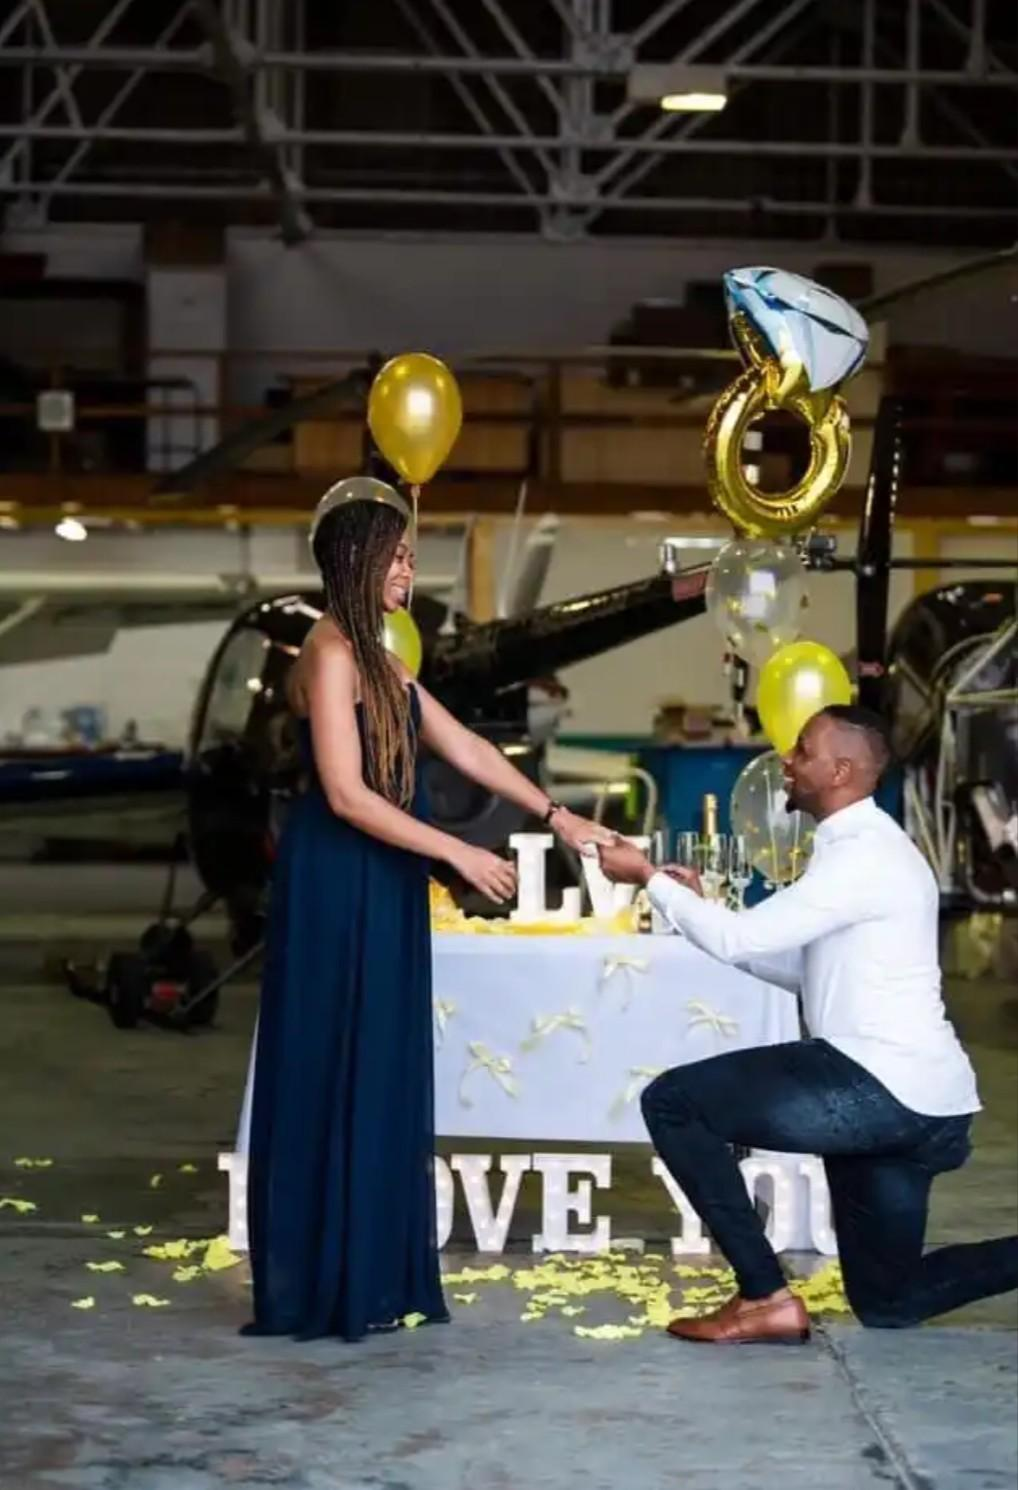 The man took his girlfriend on a helicopter ride to propose to her